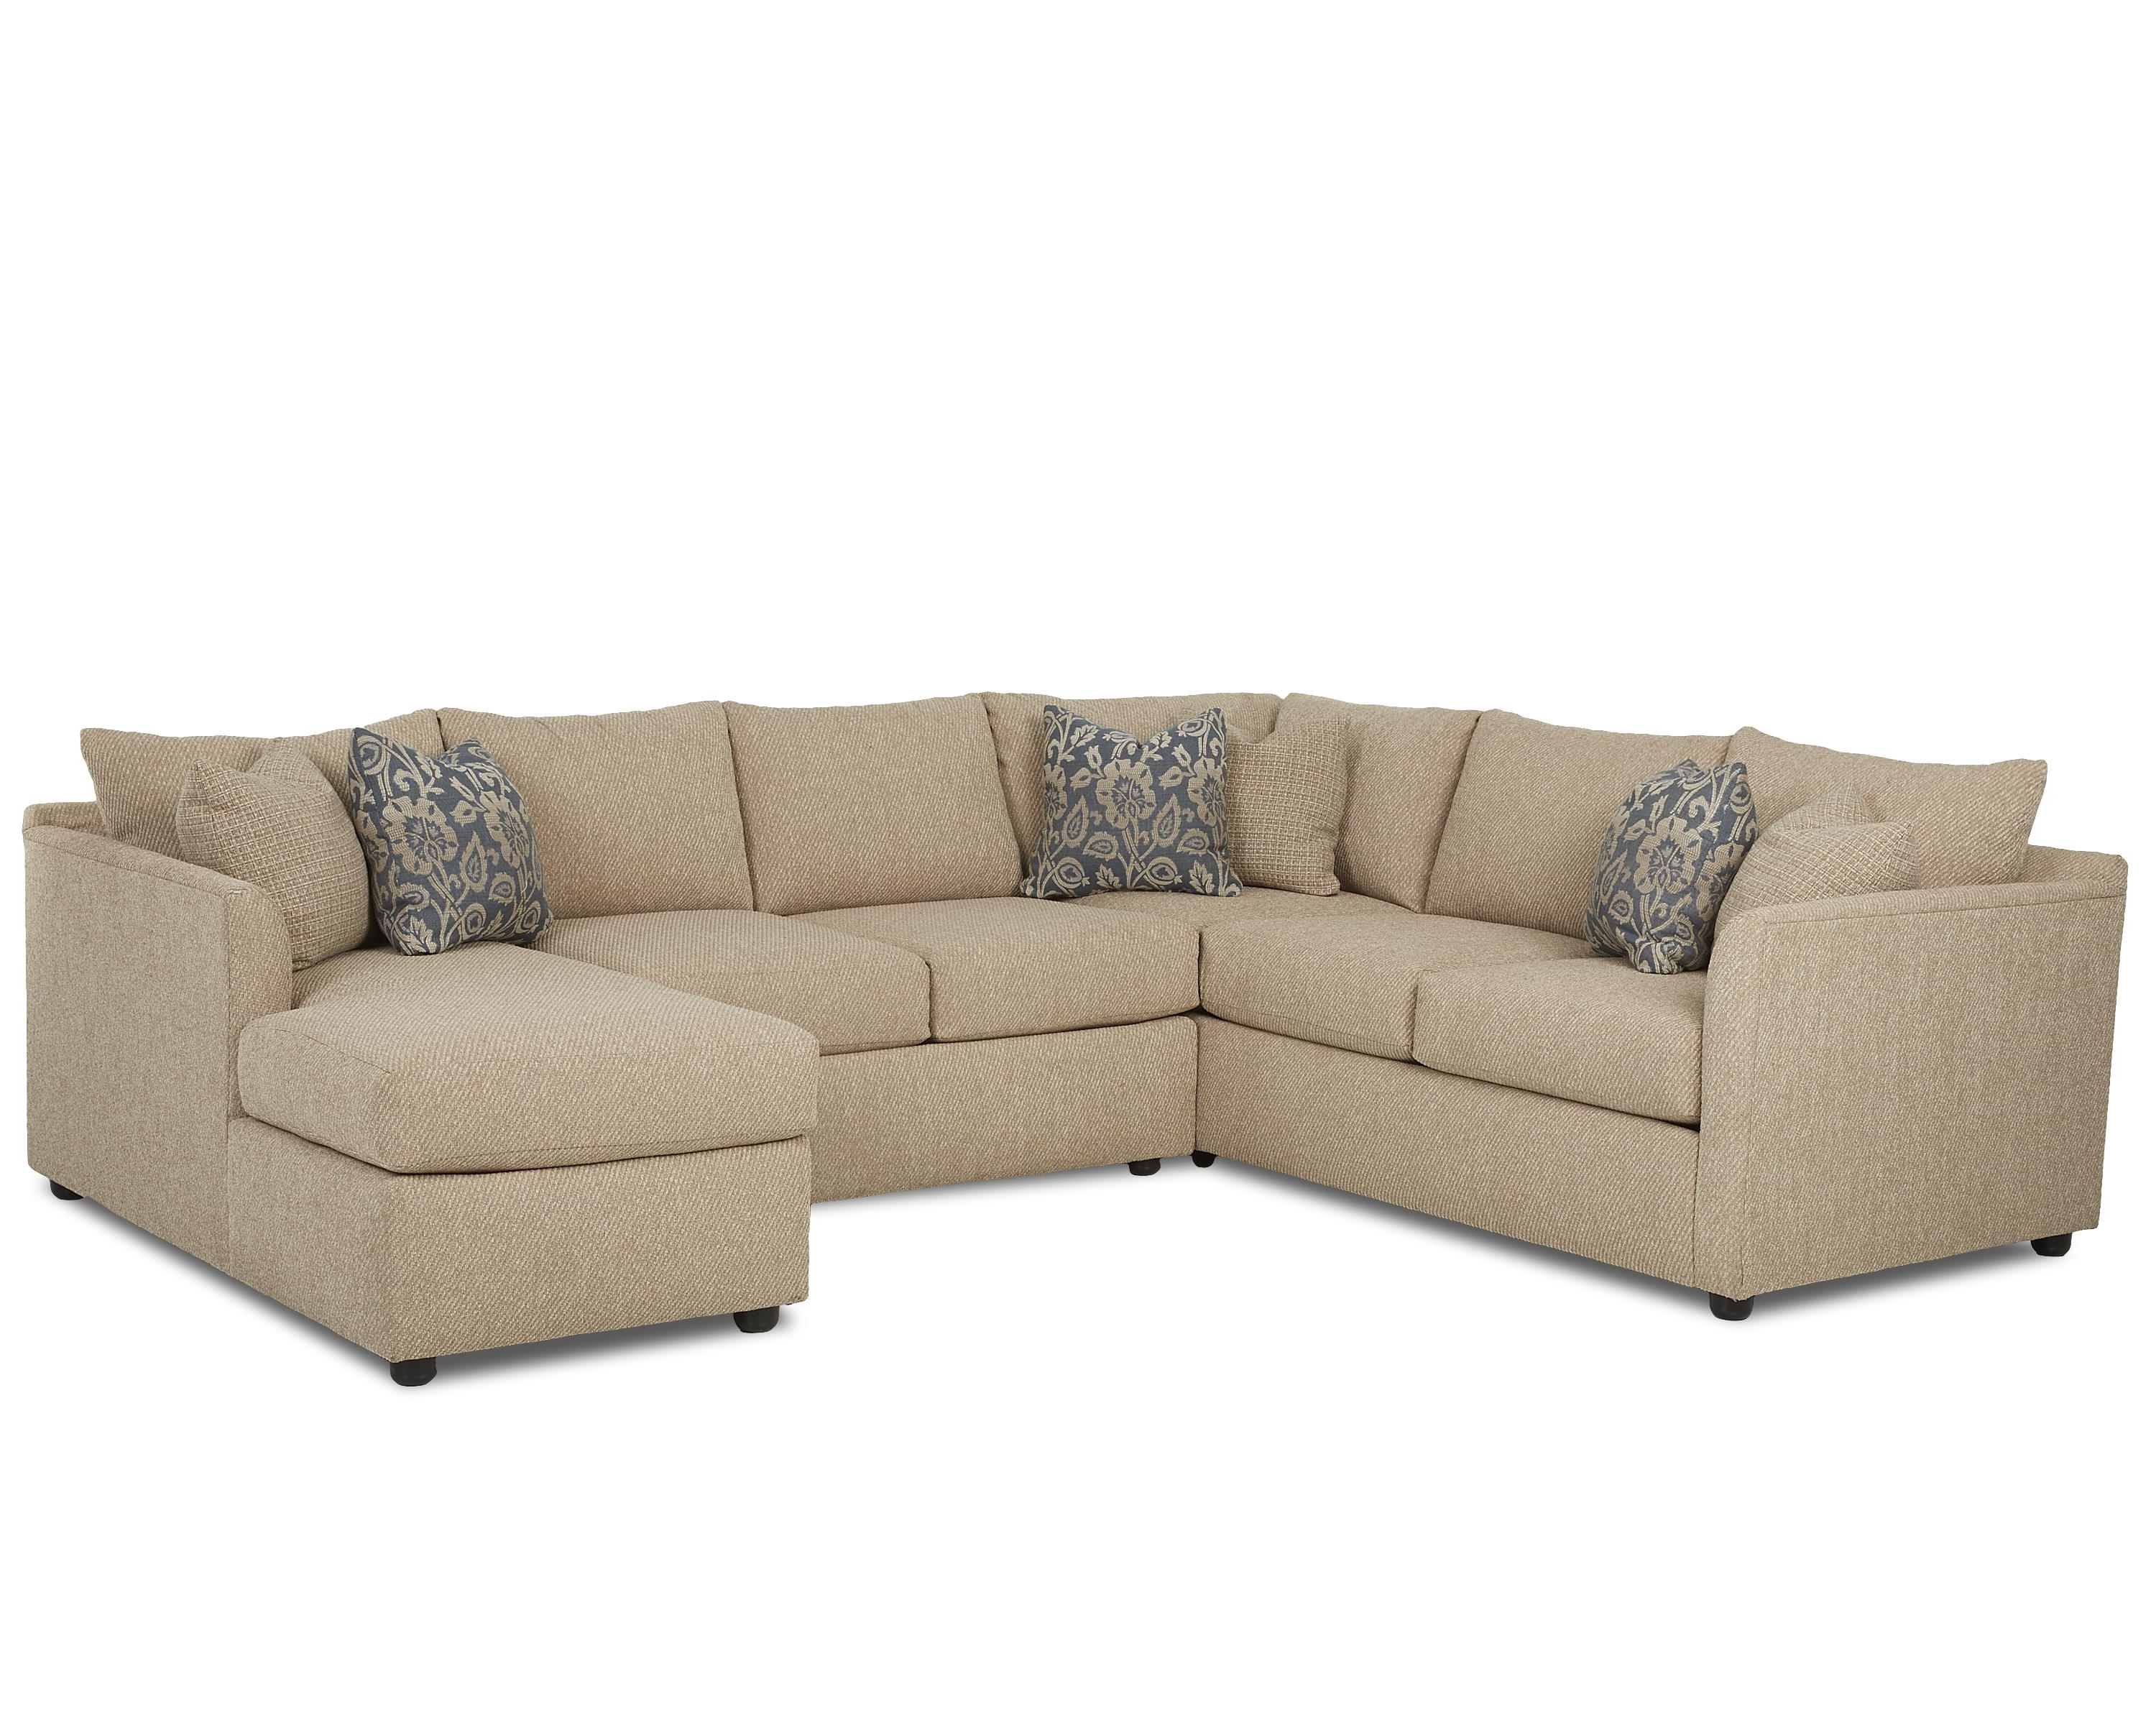 Transitional Sectional Sofa With Chaisetrisha Yearwood Home Inside Preferred Sectional Sofas In Atlanta (View 10 of 15)